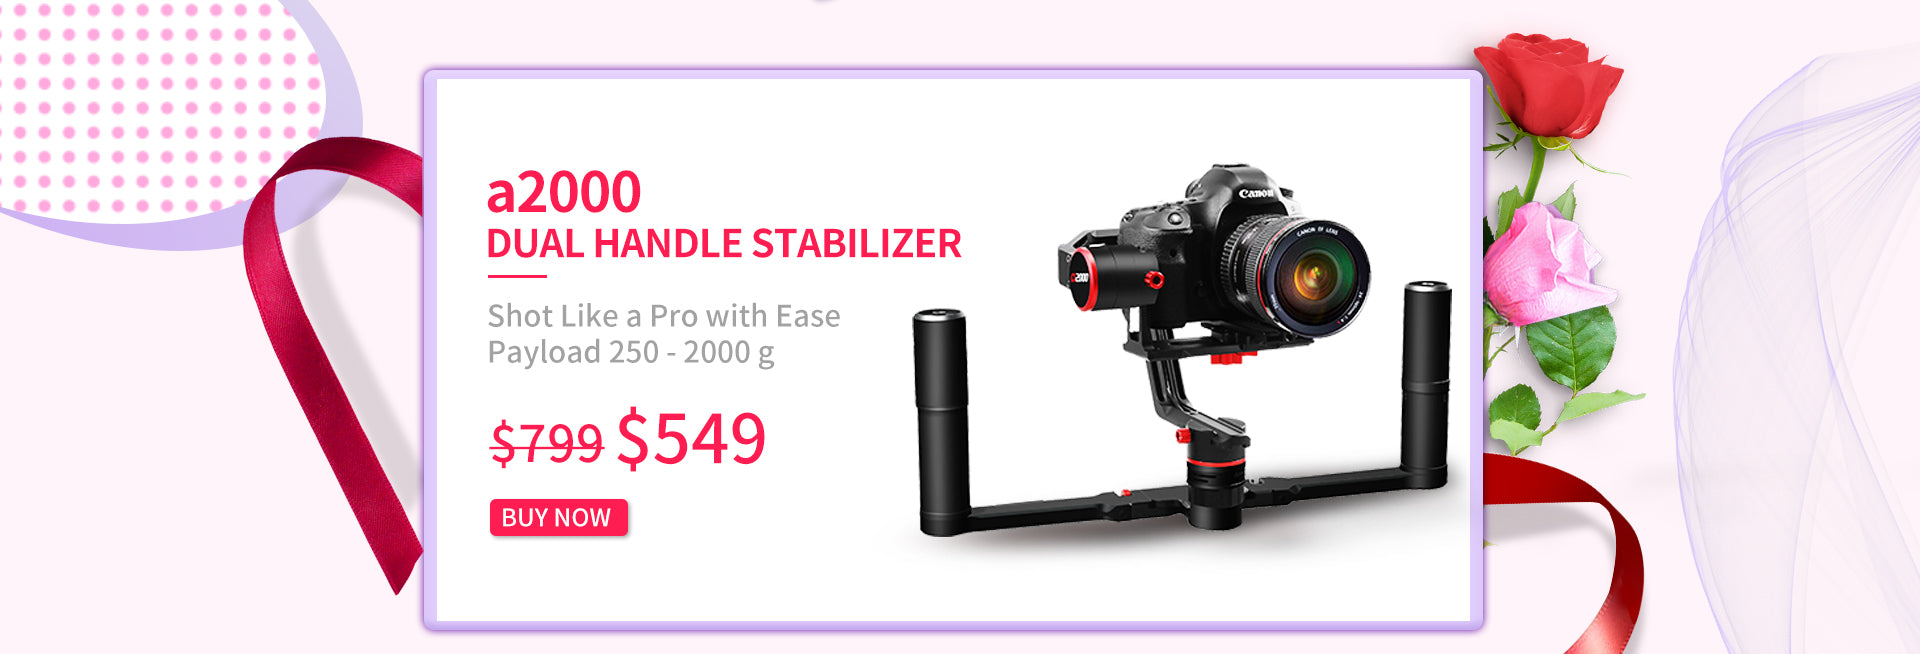 https://store.feiyu-tech.com/products/feiyutech-a2000-for-dslr-mirrorless-camera-2kg-payload-damping-sliding-arm-360-degree-rotation